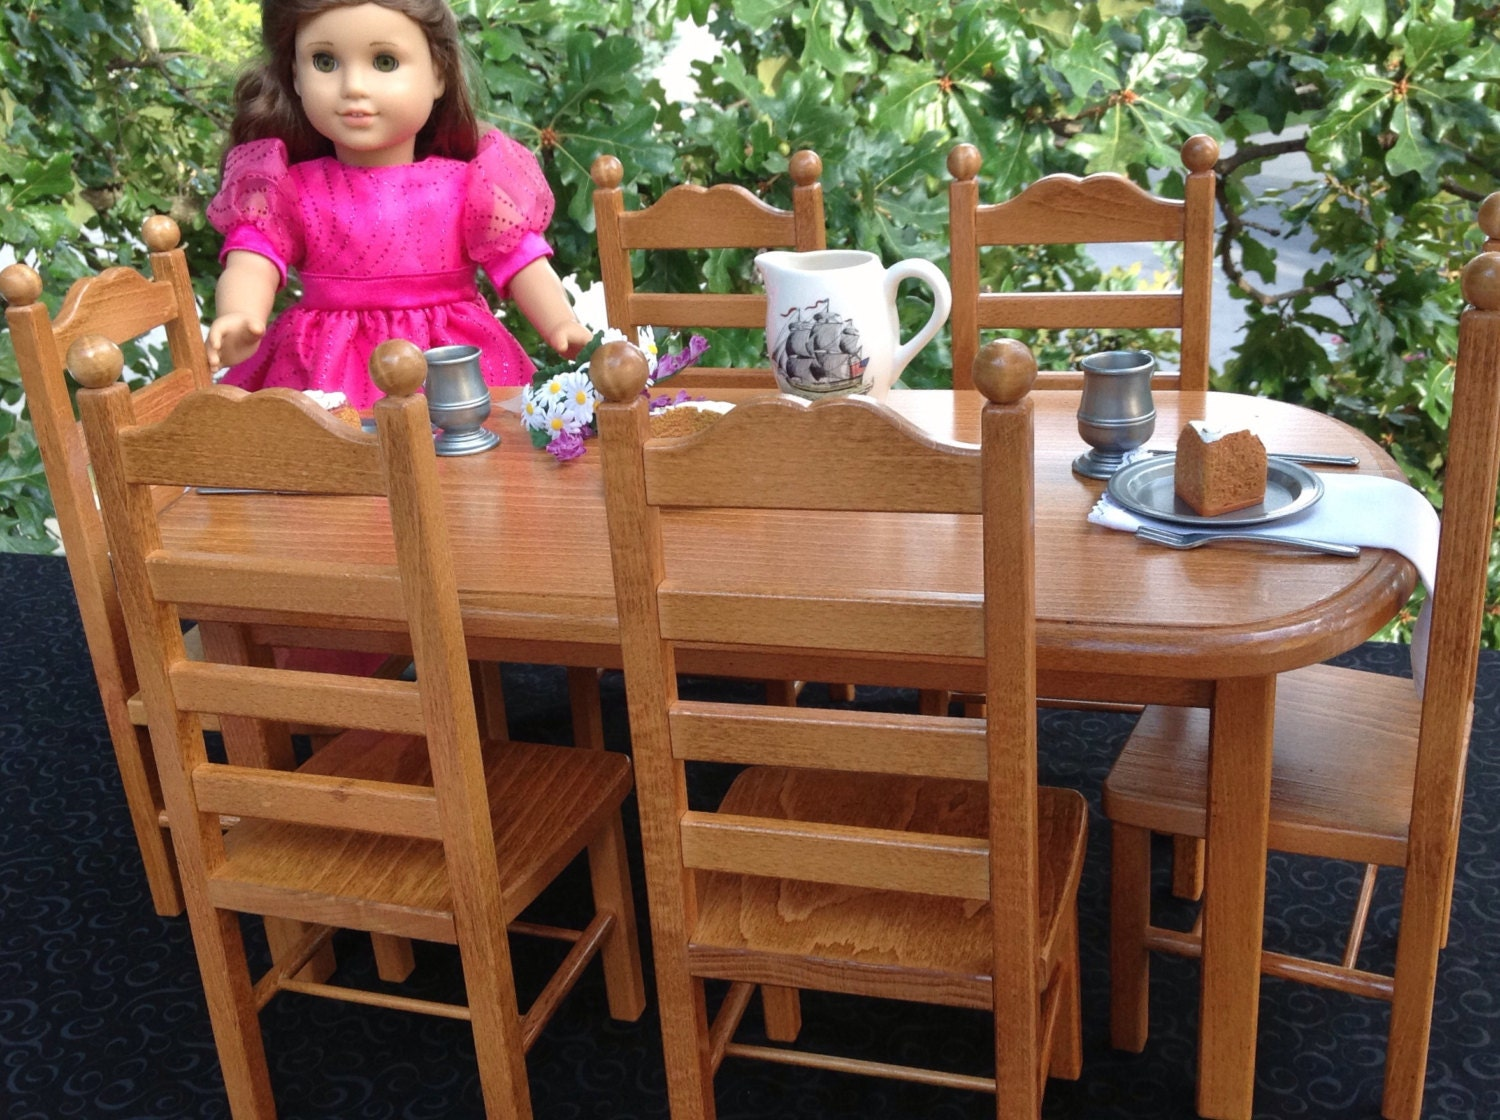 american girl doll furniture table 6 chairs stained oak. Black Bedroom Furniture Sets. Home Design Ideas